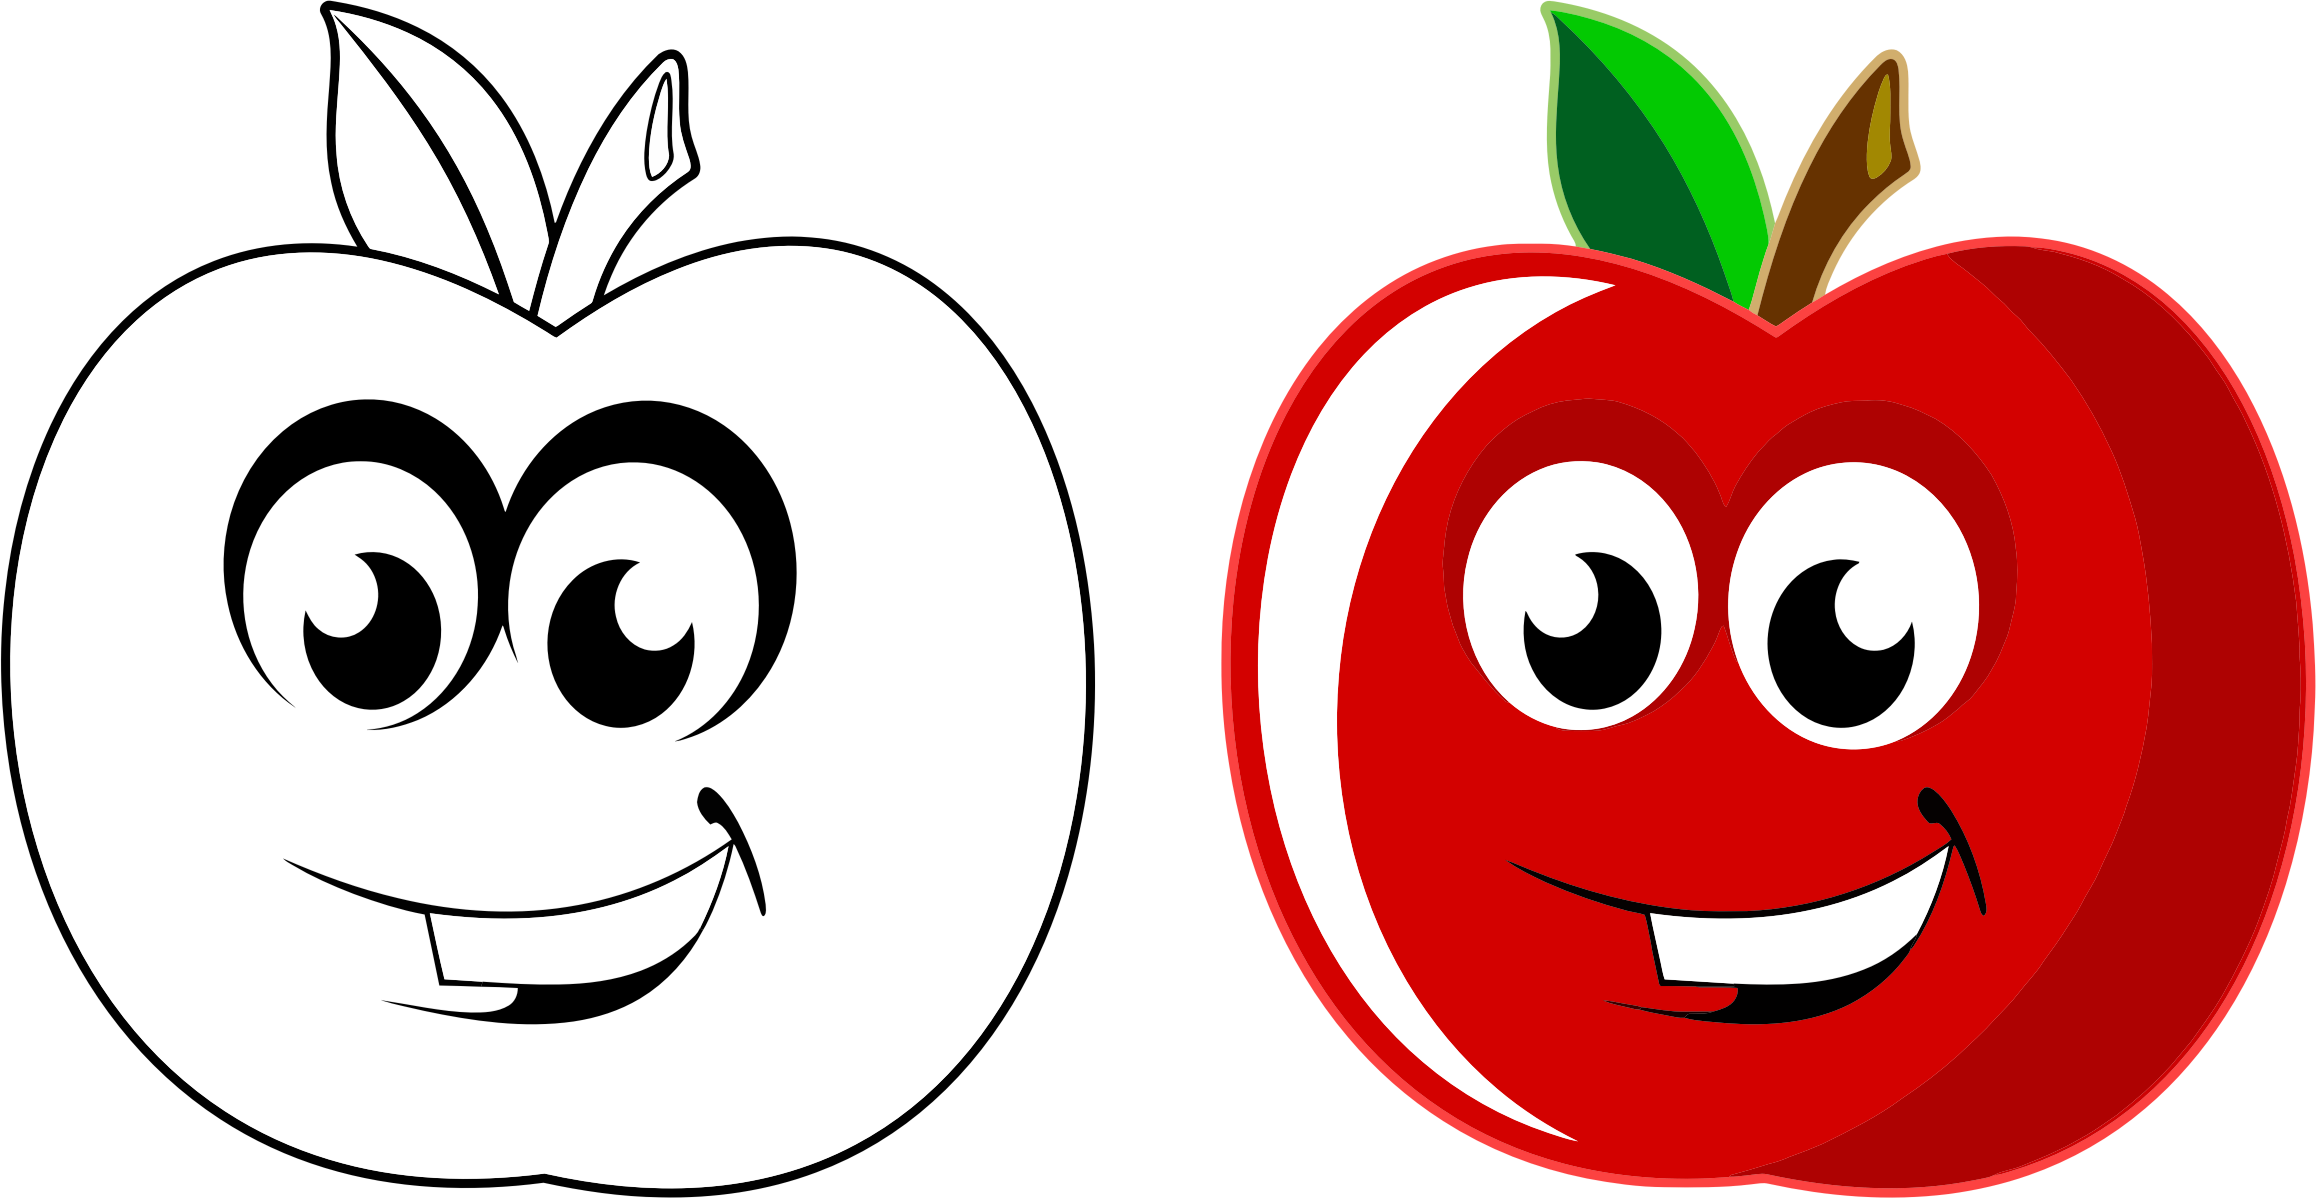 Apple clipart with face banner freeuse stock Clipart - Anthropomorphic Apple banner freeuse stock